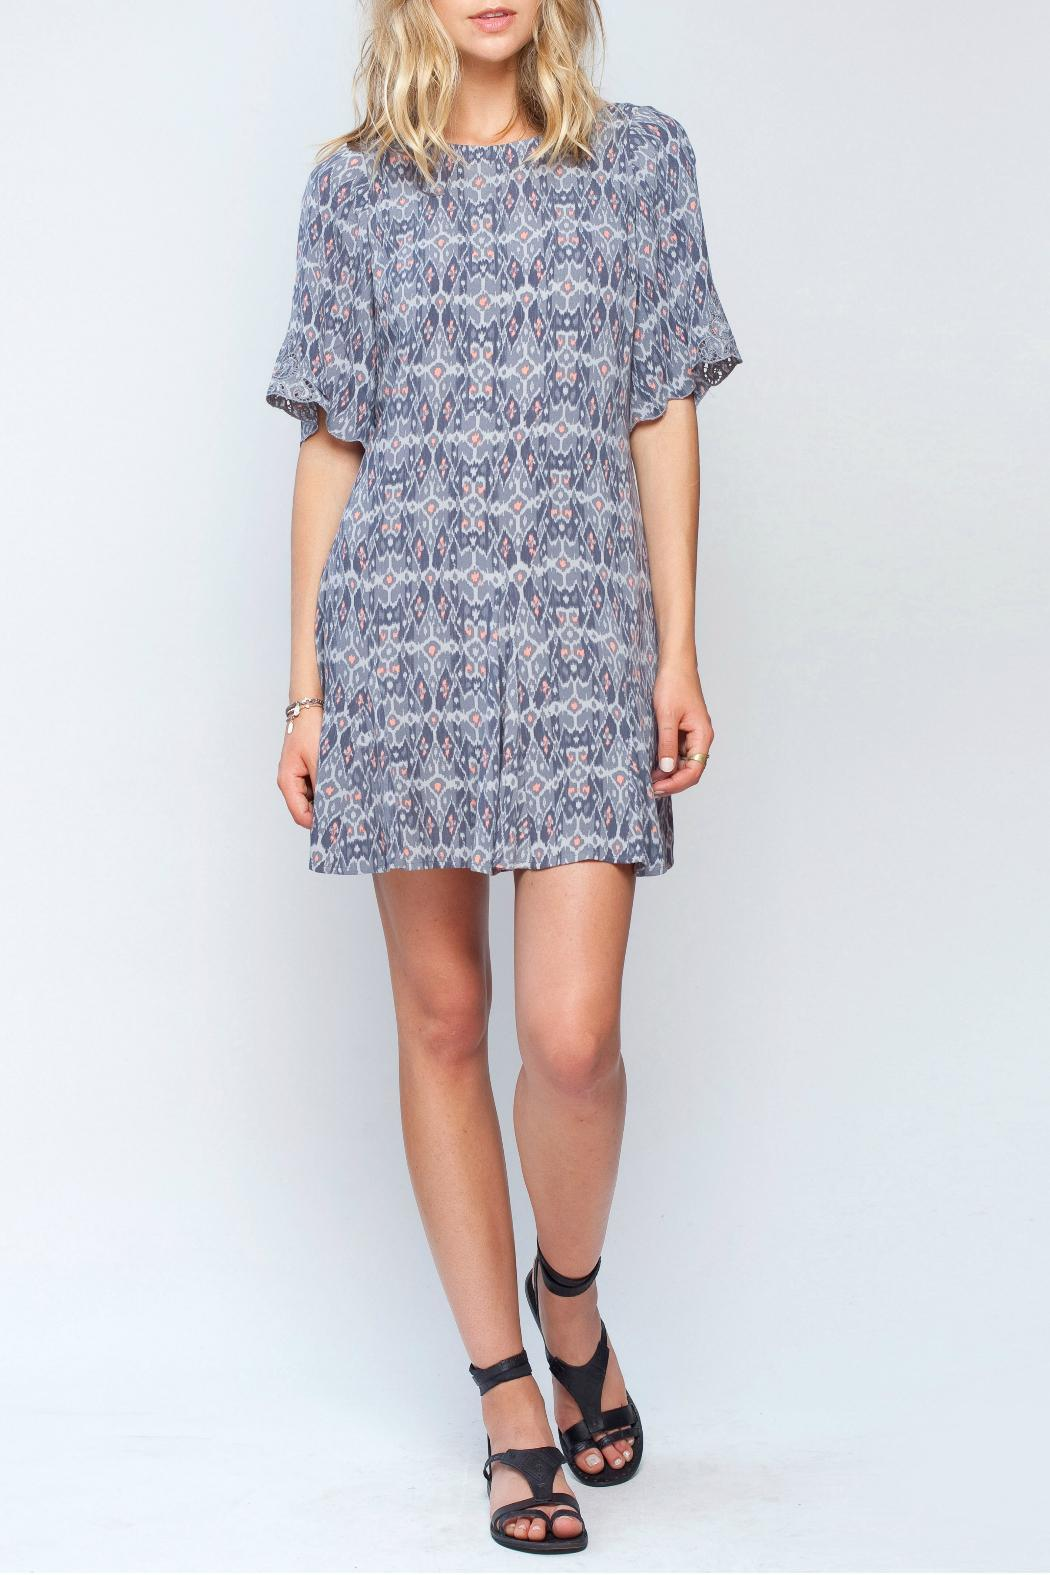 Gentle Fawn Ikat Print Dress - Front Full Image